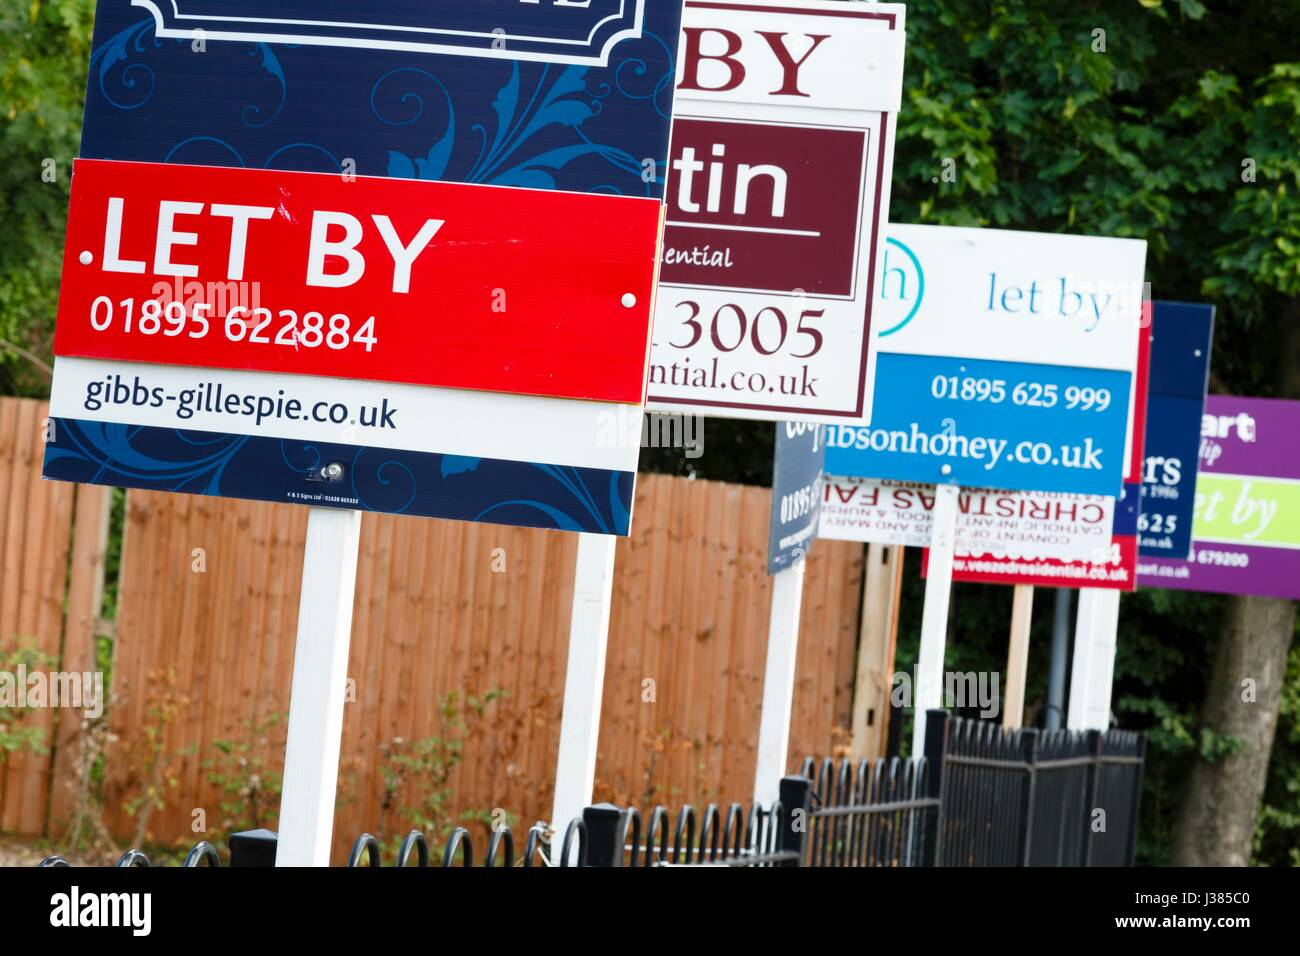 Estate agent 'let by' signs advertise property in a suburb of London - Stock Image